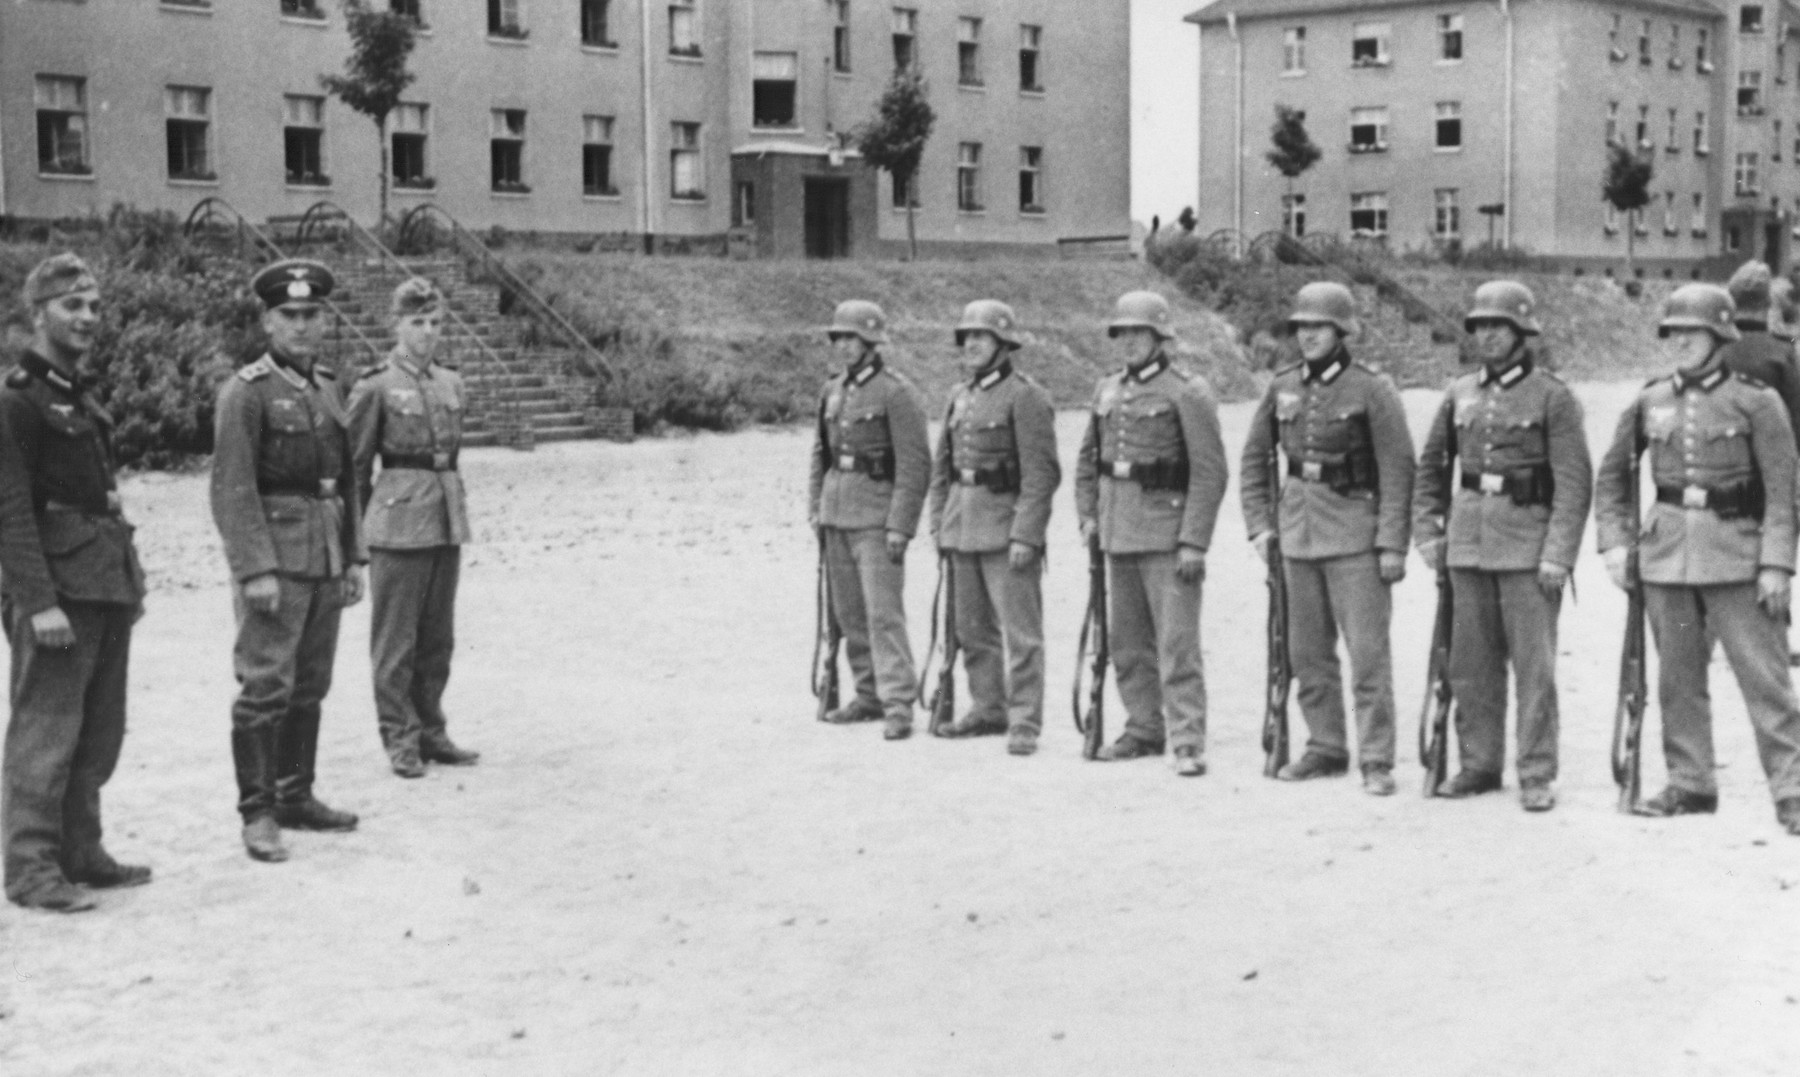 Members of Police Battalion 323 and probably Lithuanian auxiliaries stand at attention in a courtyard in front of the student dormatories of the University of Kaunas.